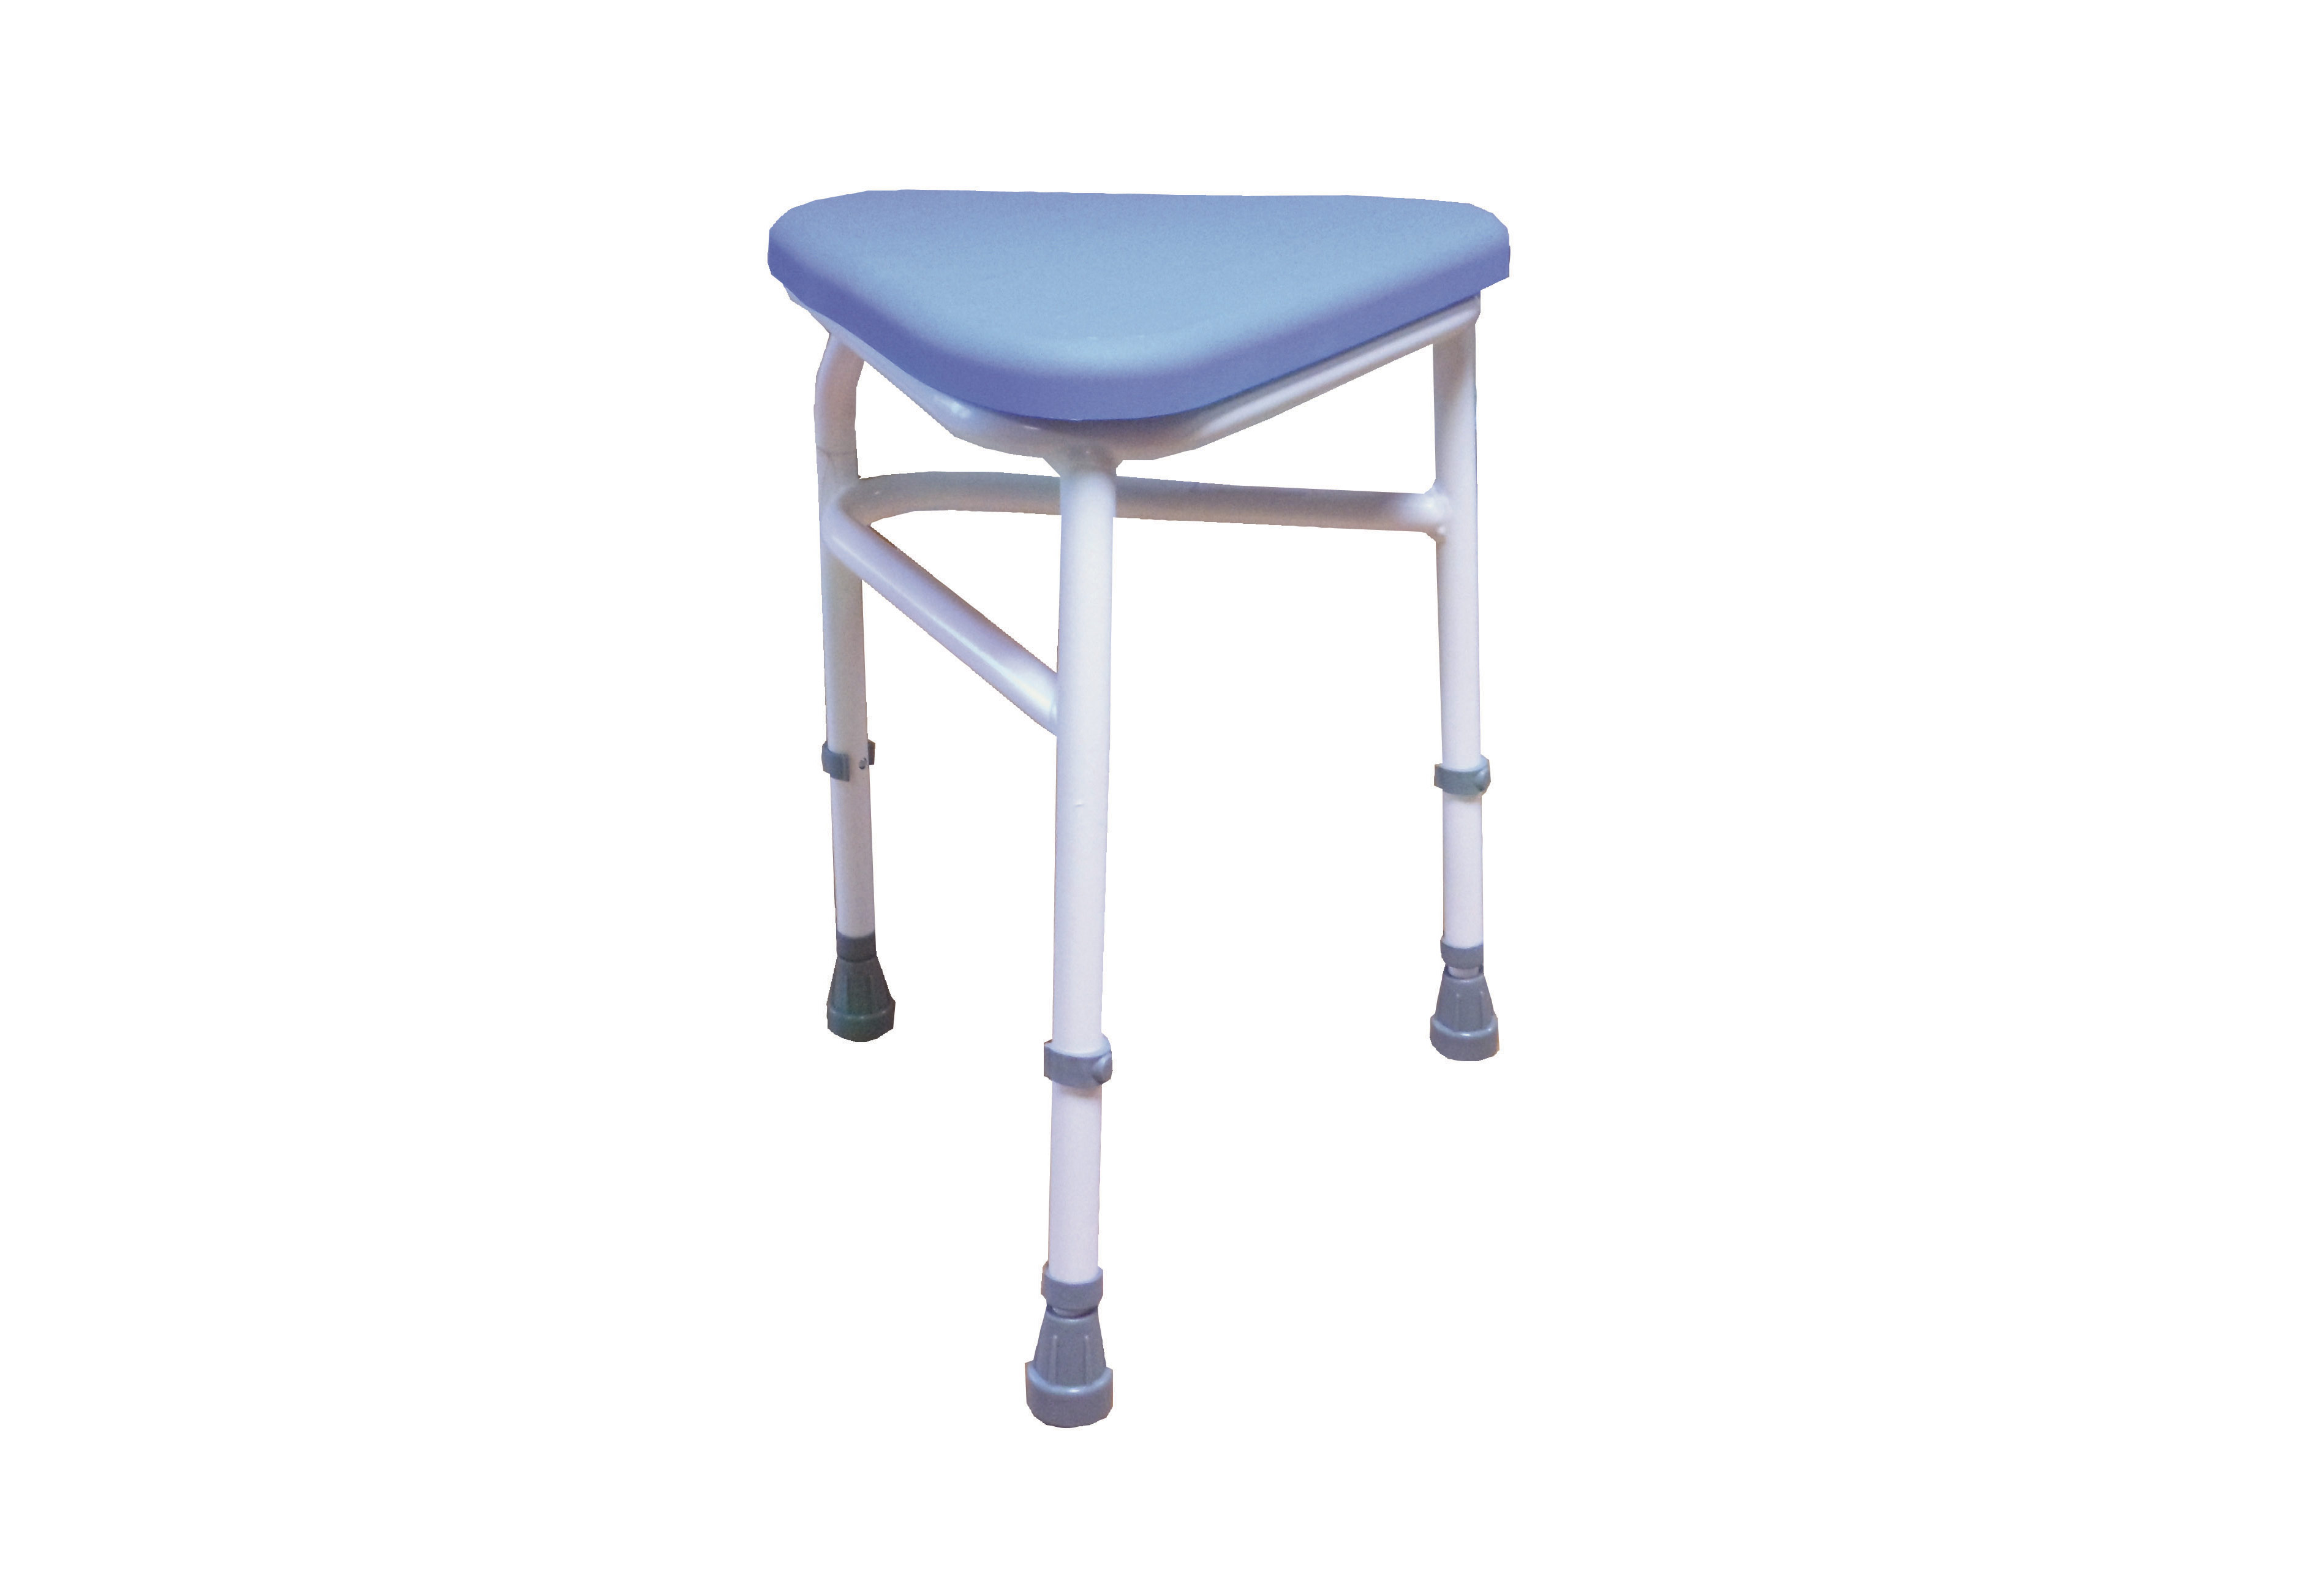 benches decorative a cheap for shower corner find teak bathrooms bath within bench stool